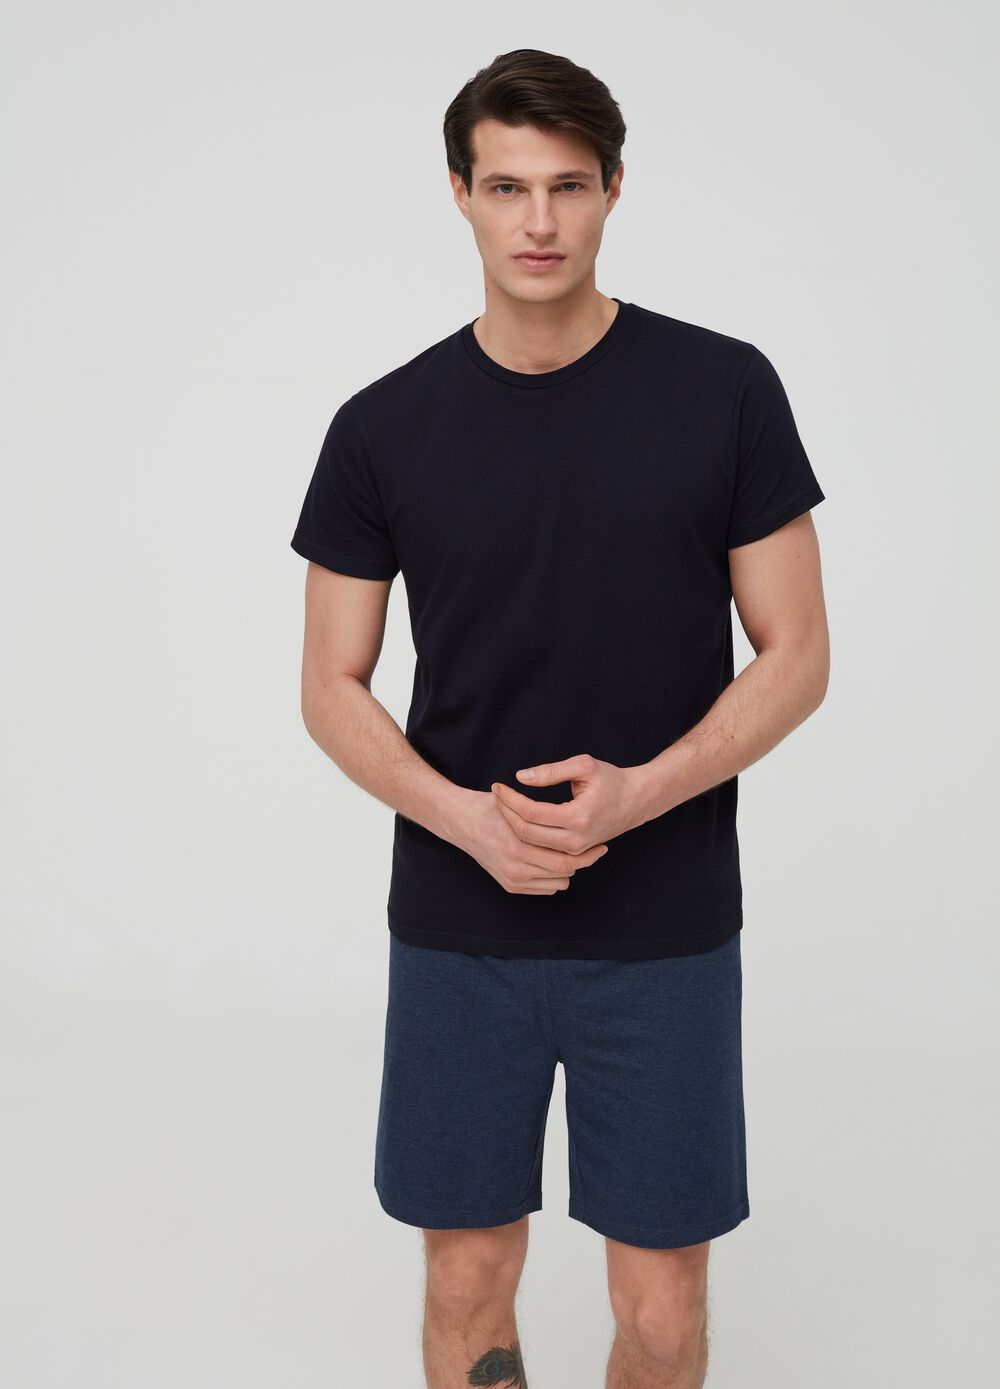 Short pyjamas consisting of T-shirt and trousers